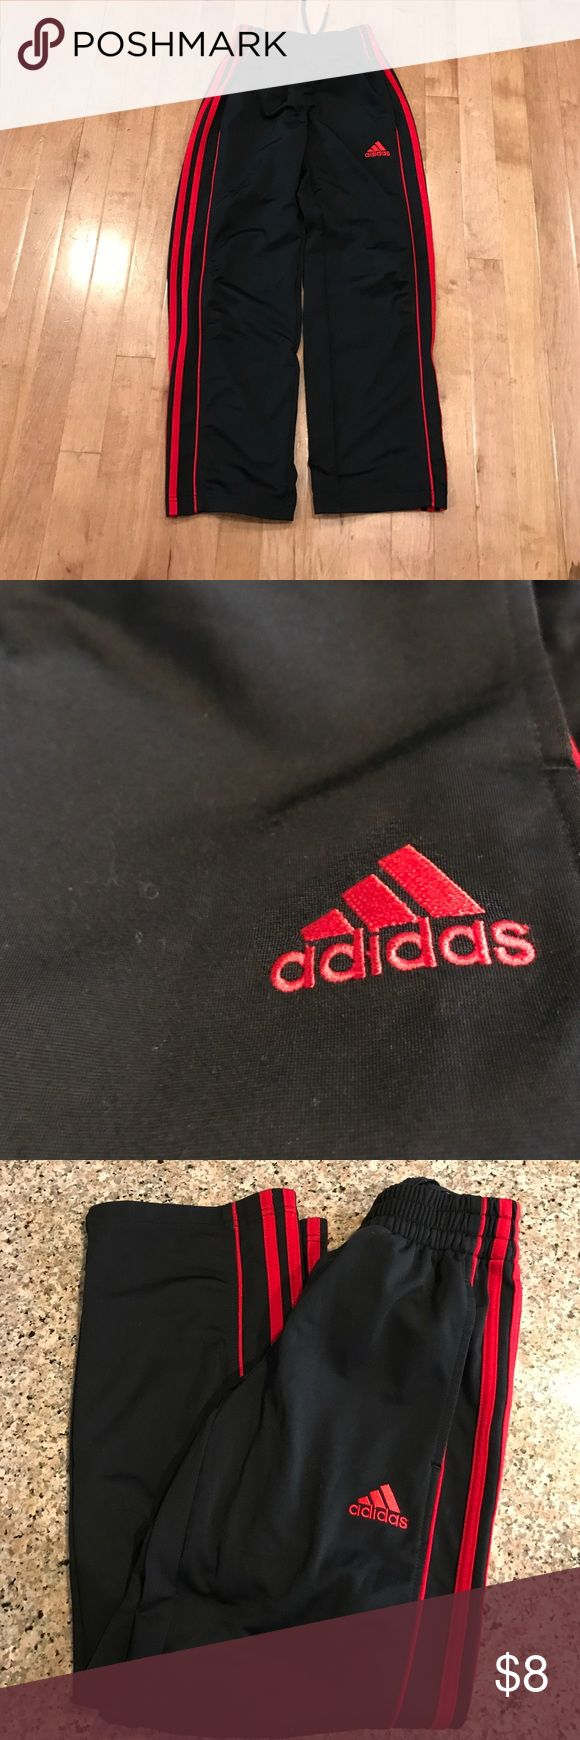 "Boys adidas track pants Boys Black and red classic adidas track pants. Black with red stripes, size 8, 31"" in length, 20"" waist unstretched. Adidas Bottoms Sweatpants & Joggers"